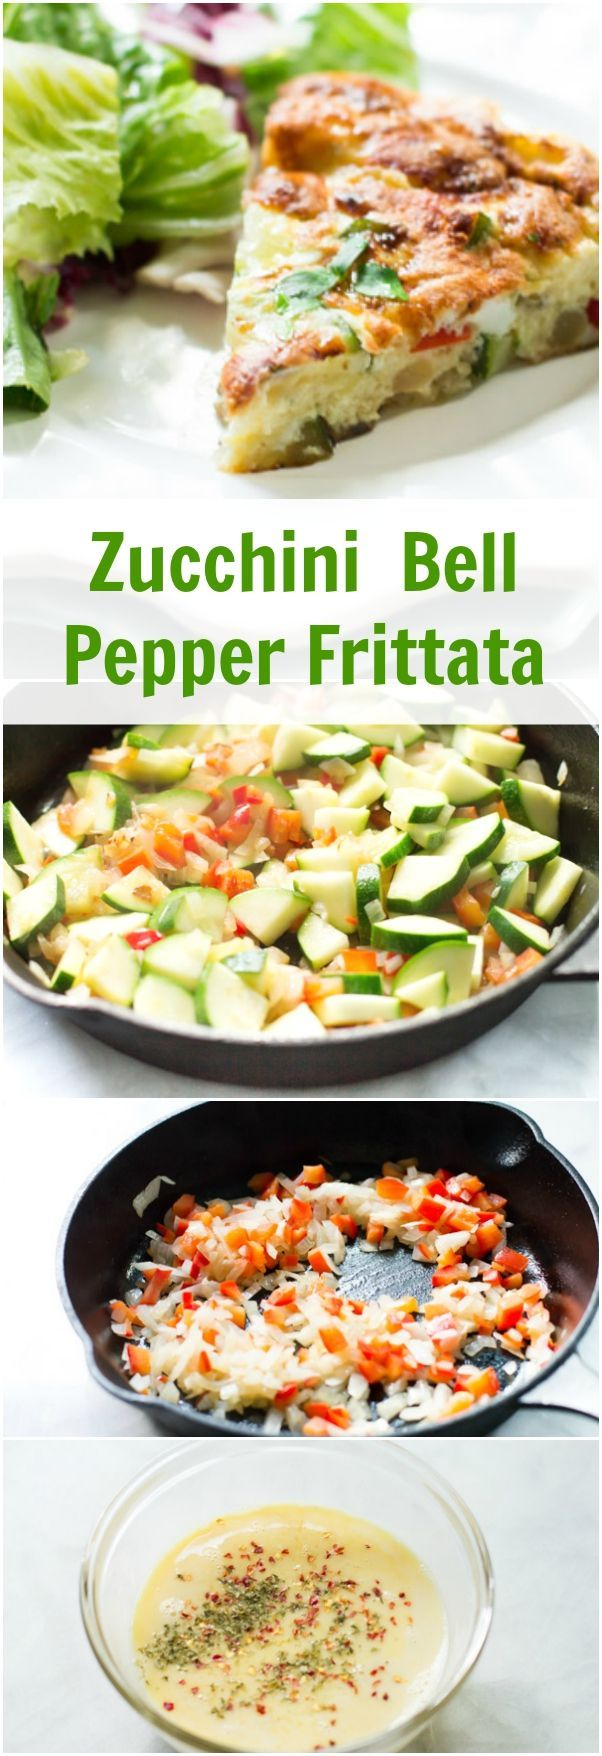 Zucchini Red Bell Pepper Frittata - This easy and quick meatless frittata combines eggs with zucchini, red bell pepper and onion to make a delicious dish for a healthy lunch option.